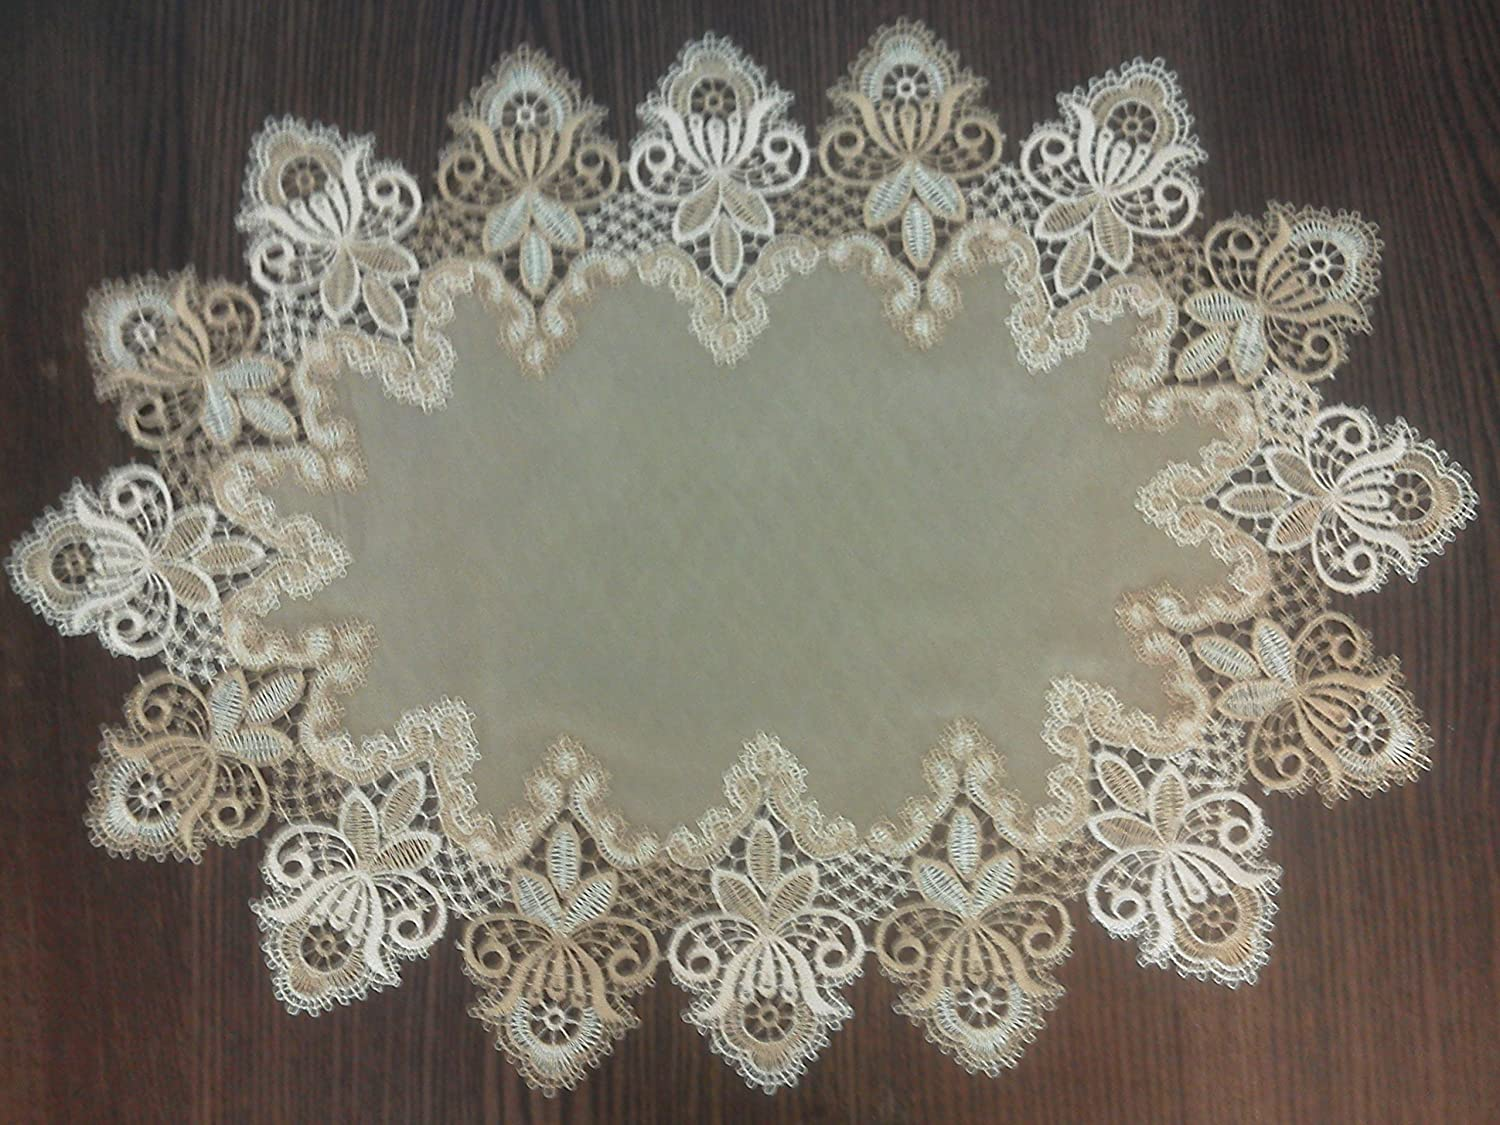 Doily or Placemat in Gold Vintage Lace and Brown Microsuede Fabric, Size 24 x 15 inches